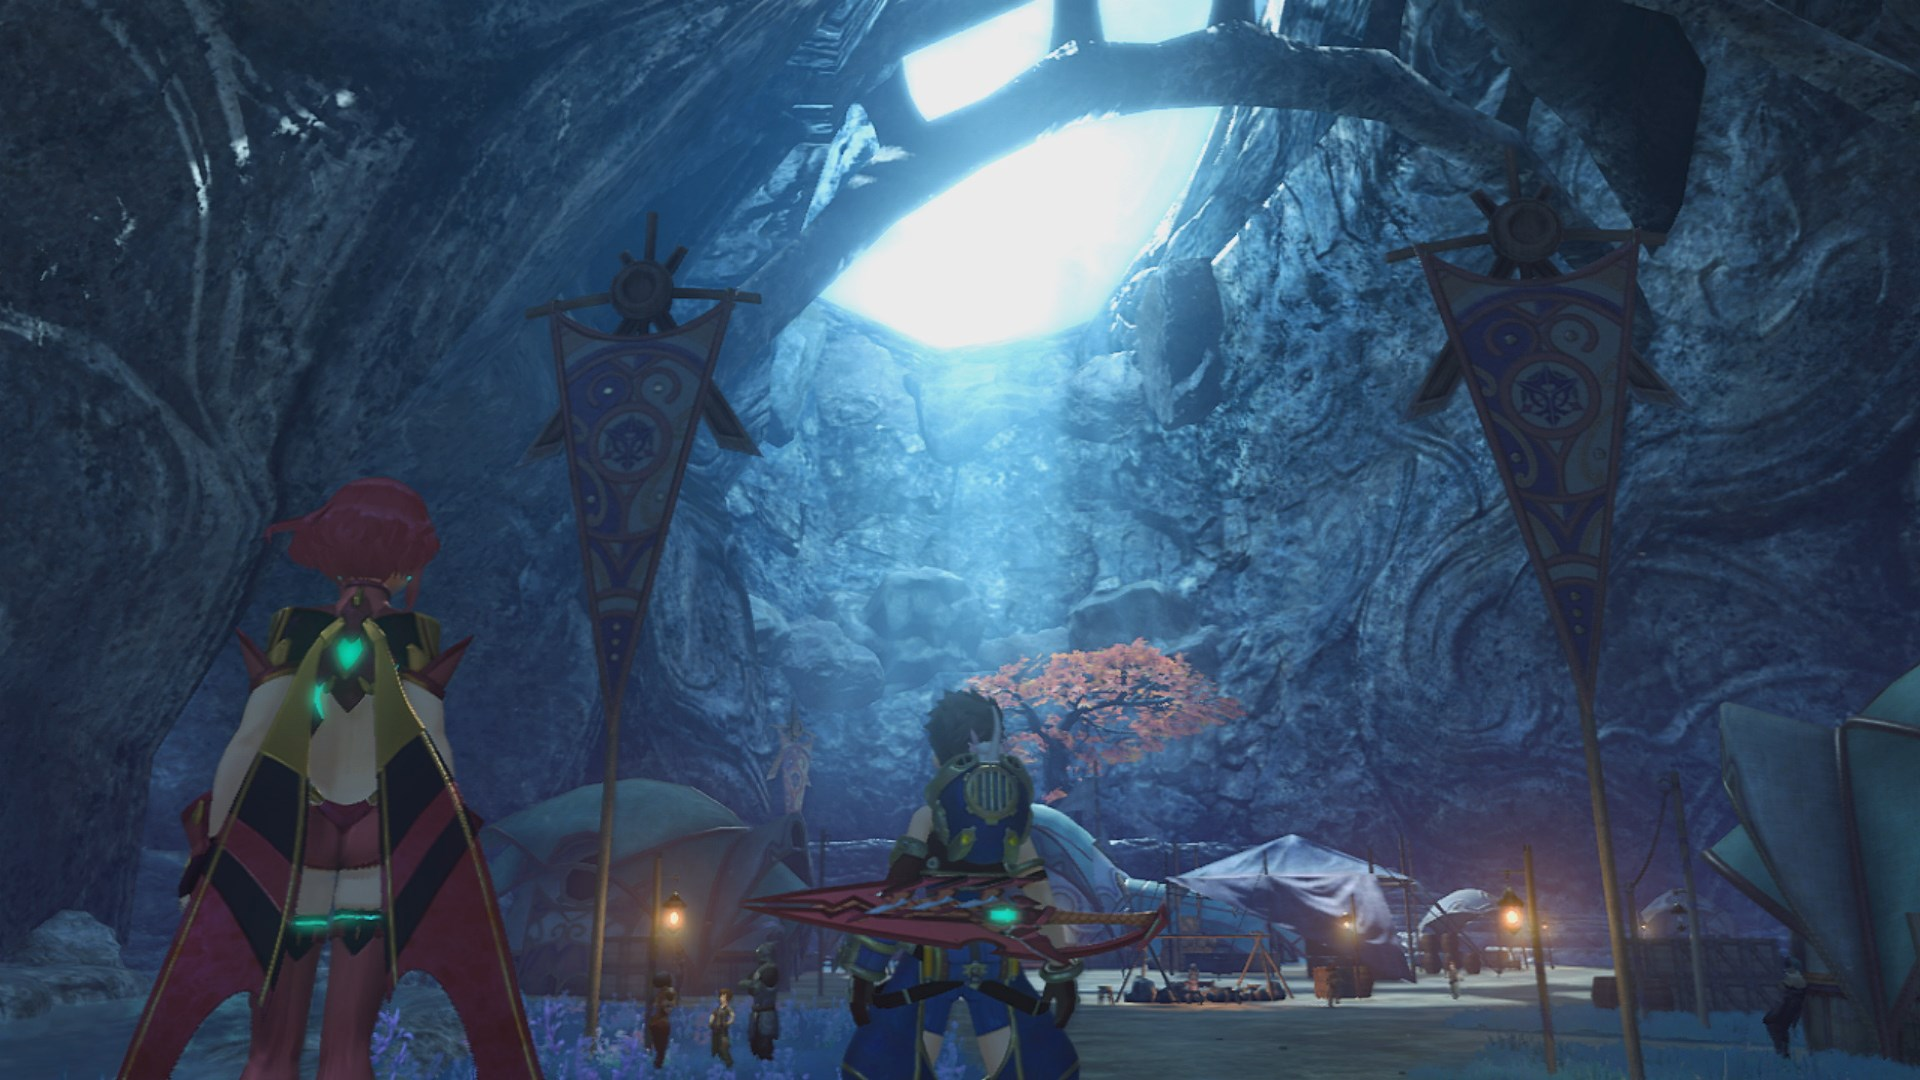 A moody cavern in Xenoblade Chronicles 2.